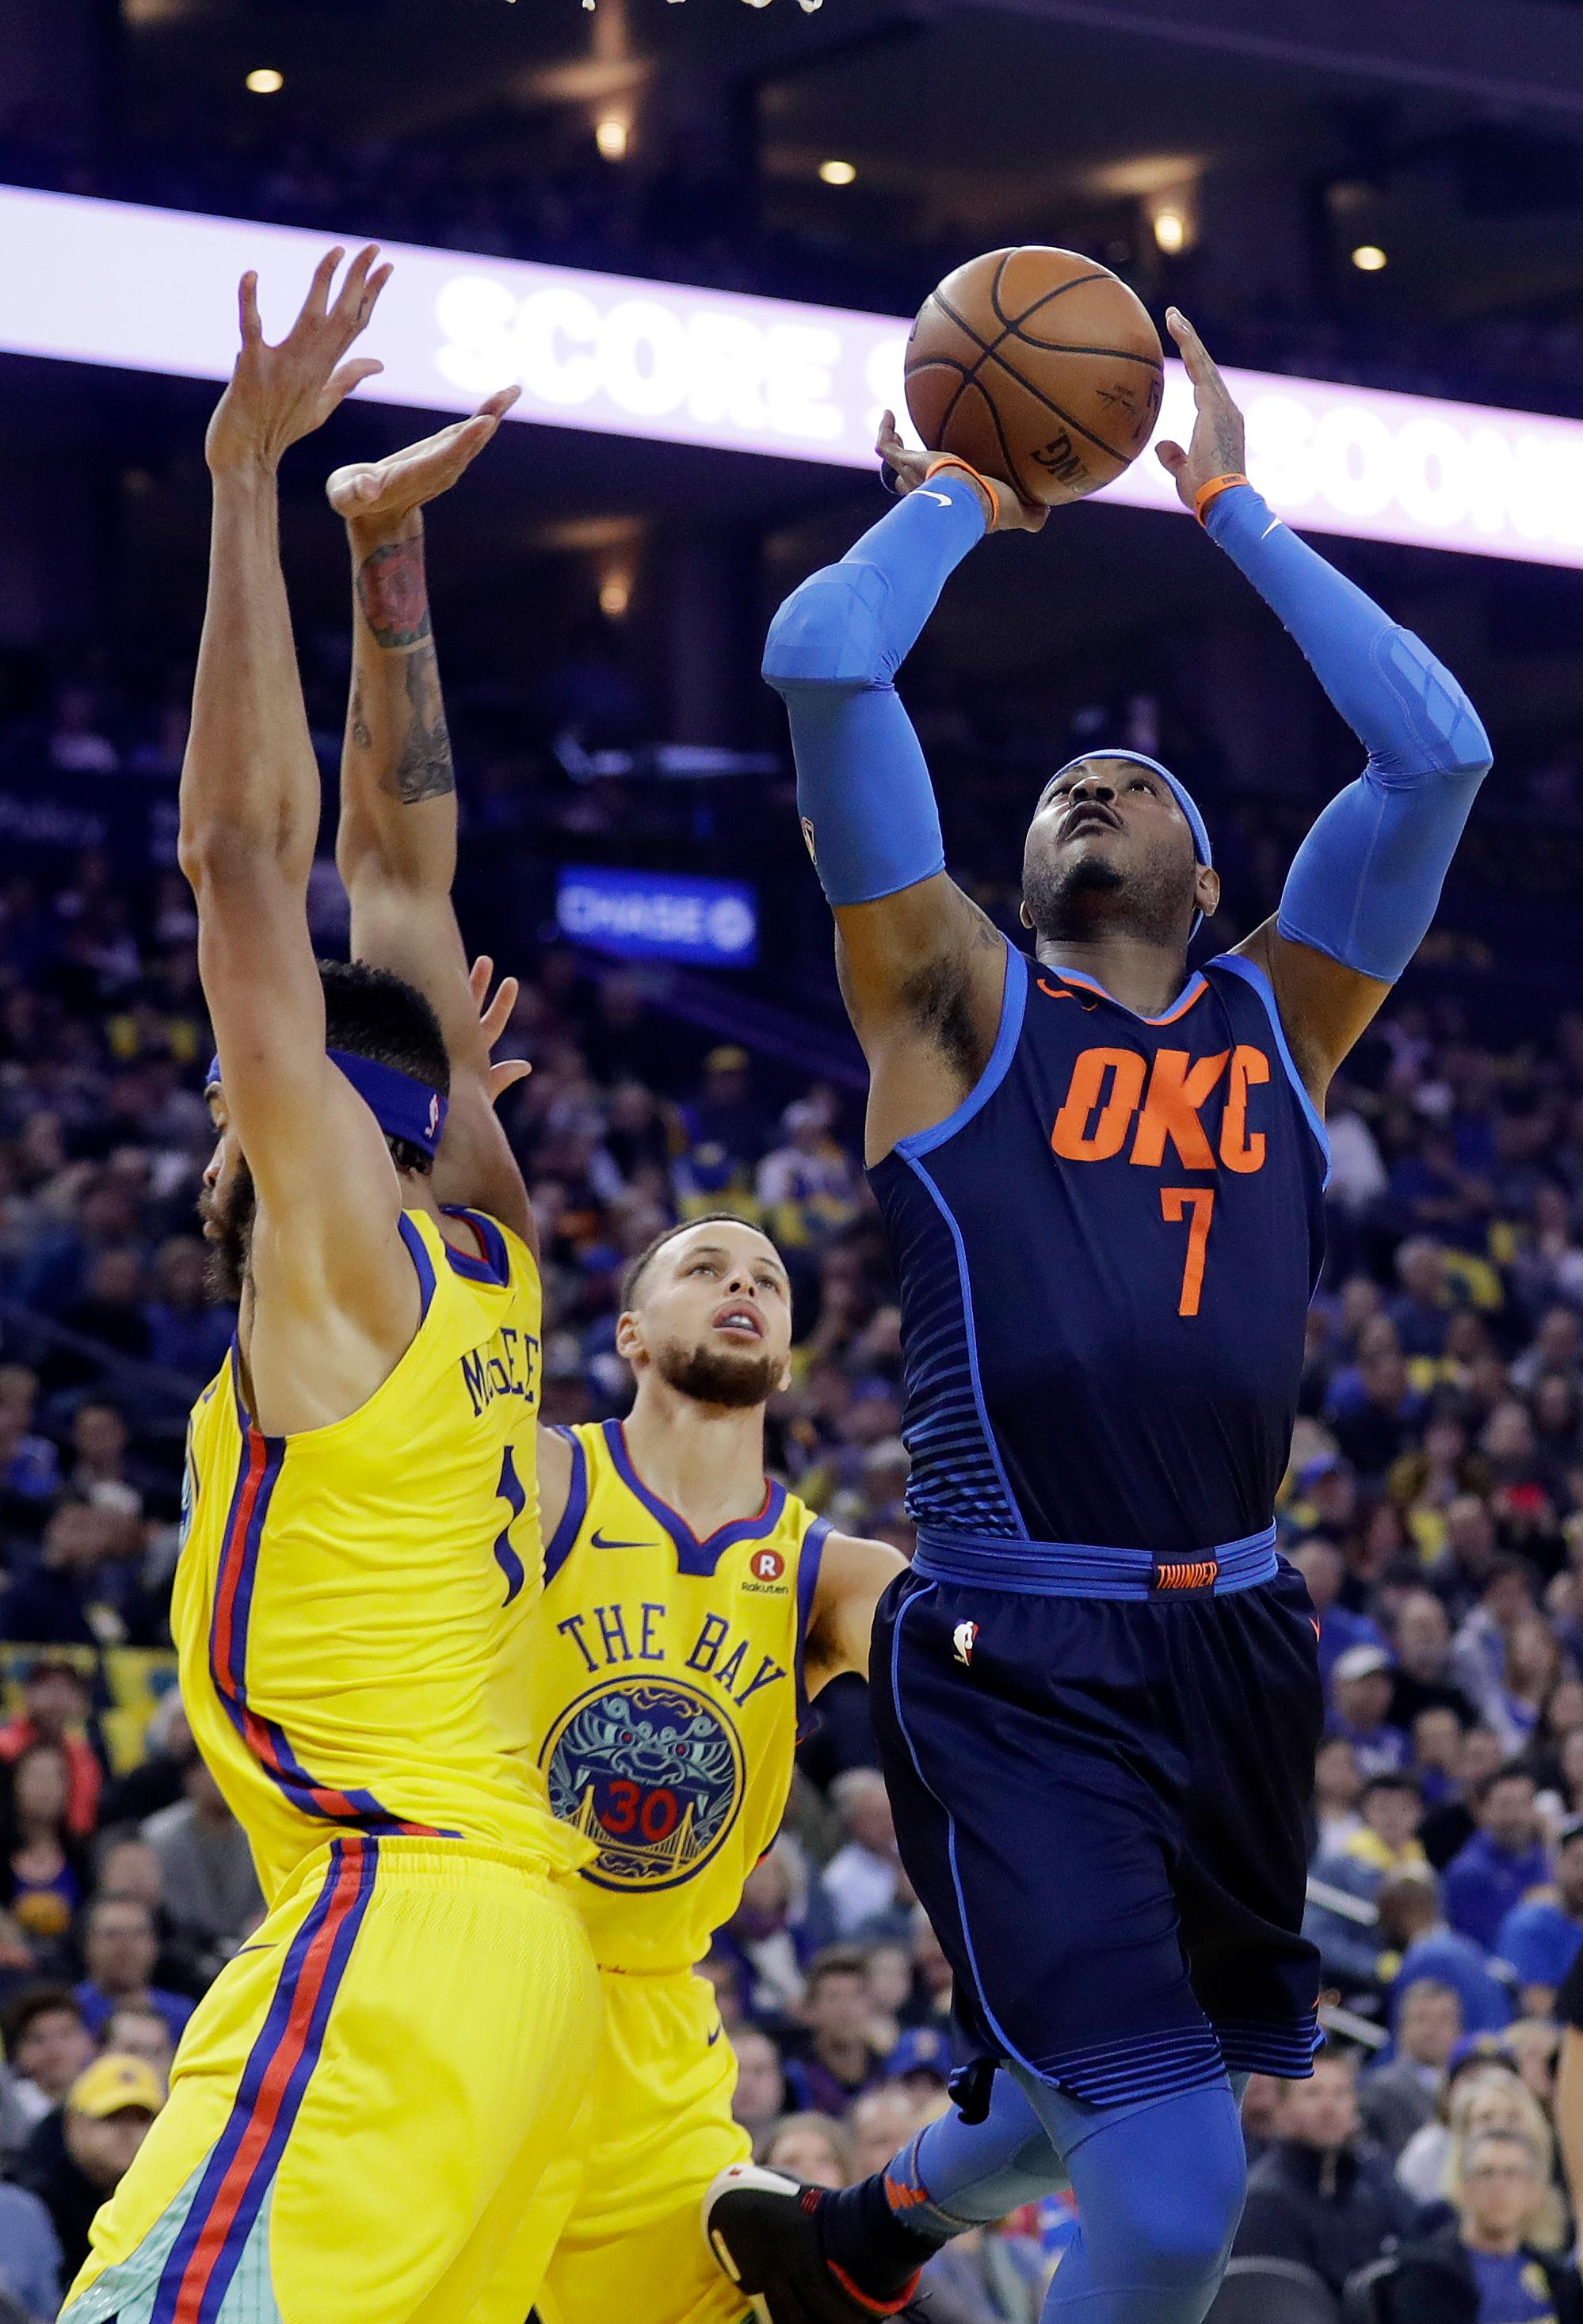 Oklahoma City Thunder's Carmelo Anthony (7) shoots next to Golden State Warriors' Stephen Curry, center, and JaVale McGee during the first half of an NBA basketball game Saturday, Feb. 24, 2018, in Oakland, Calif. (AP Photo/Marcio Jose Sanchez)